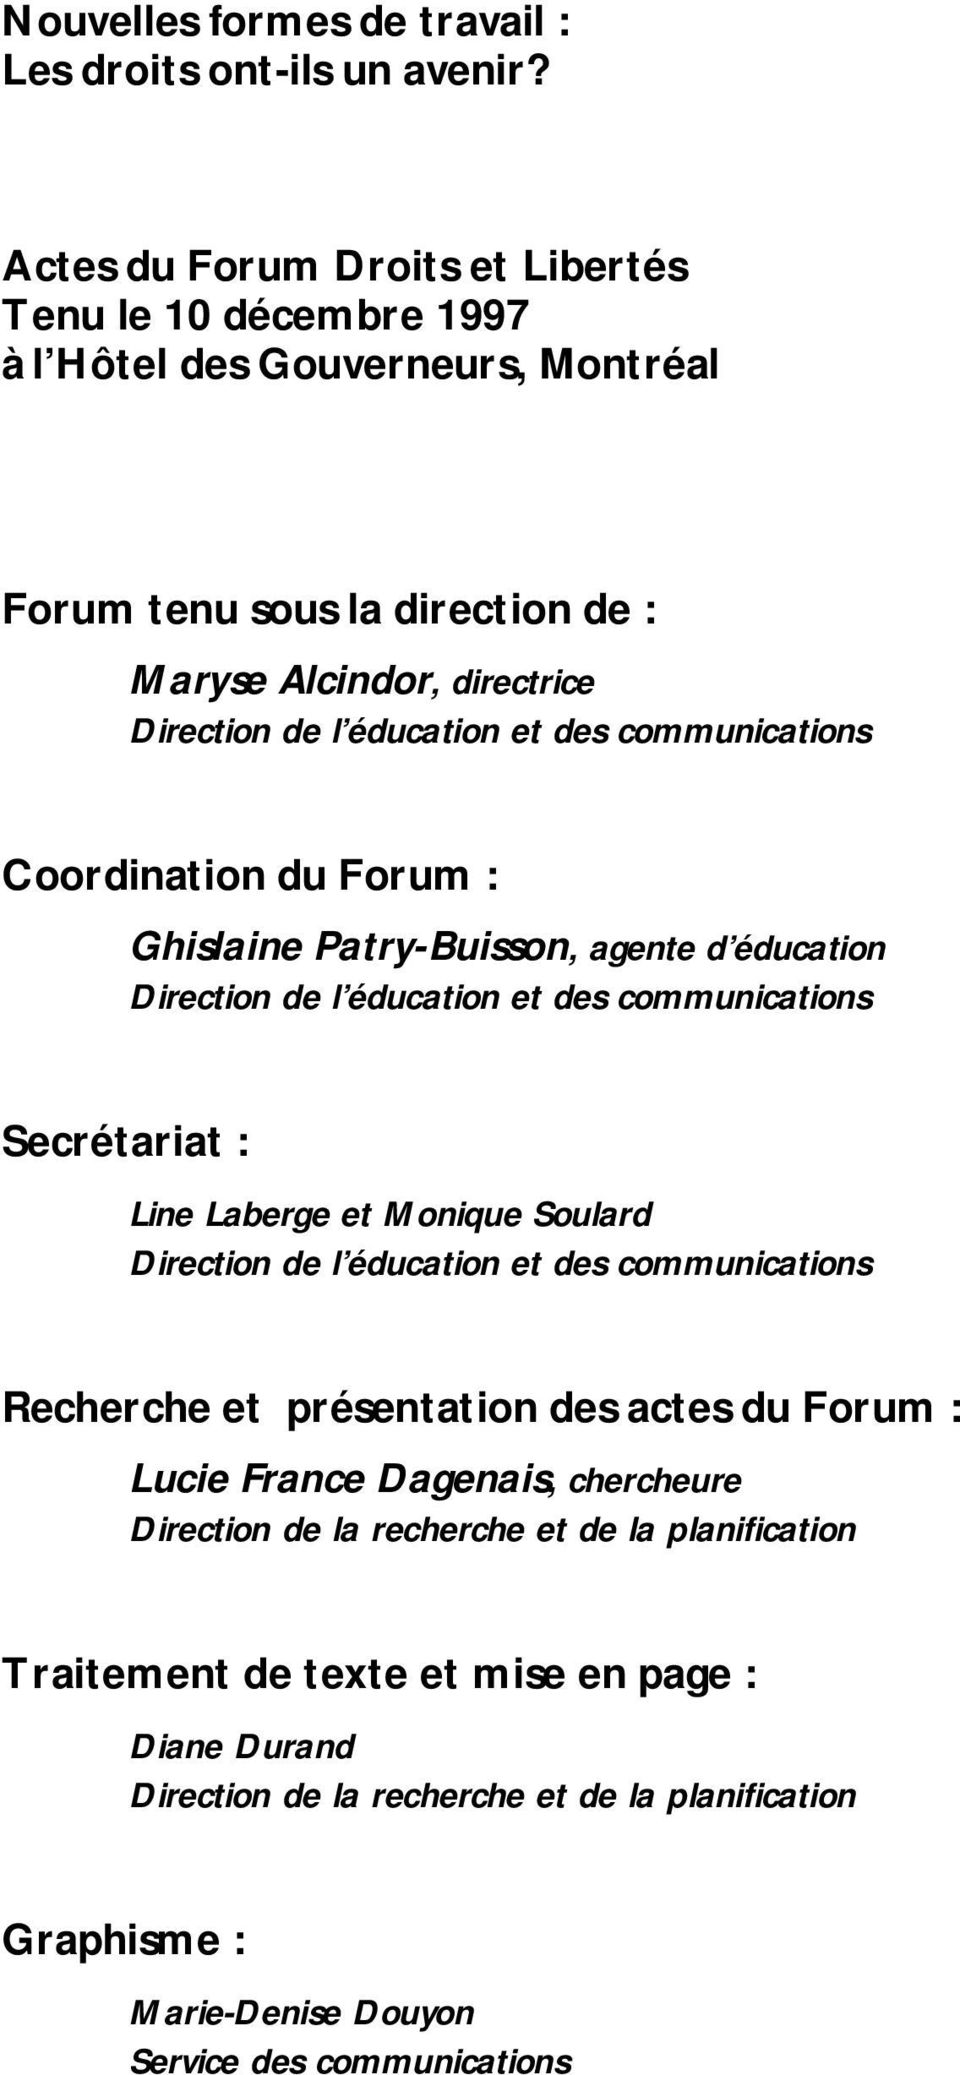 communications Coordination du Forum : Ghislaine Patry-Buisson, agente d éducation Direction de l éducation et des communications Secrétariat : Line Laberge et Monique Soulard Direction de